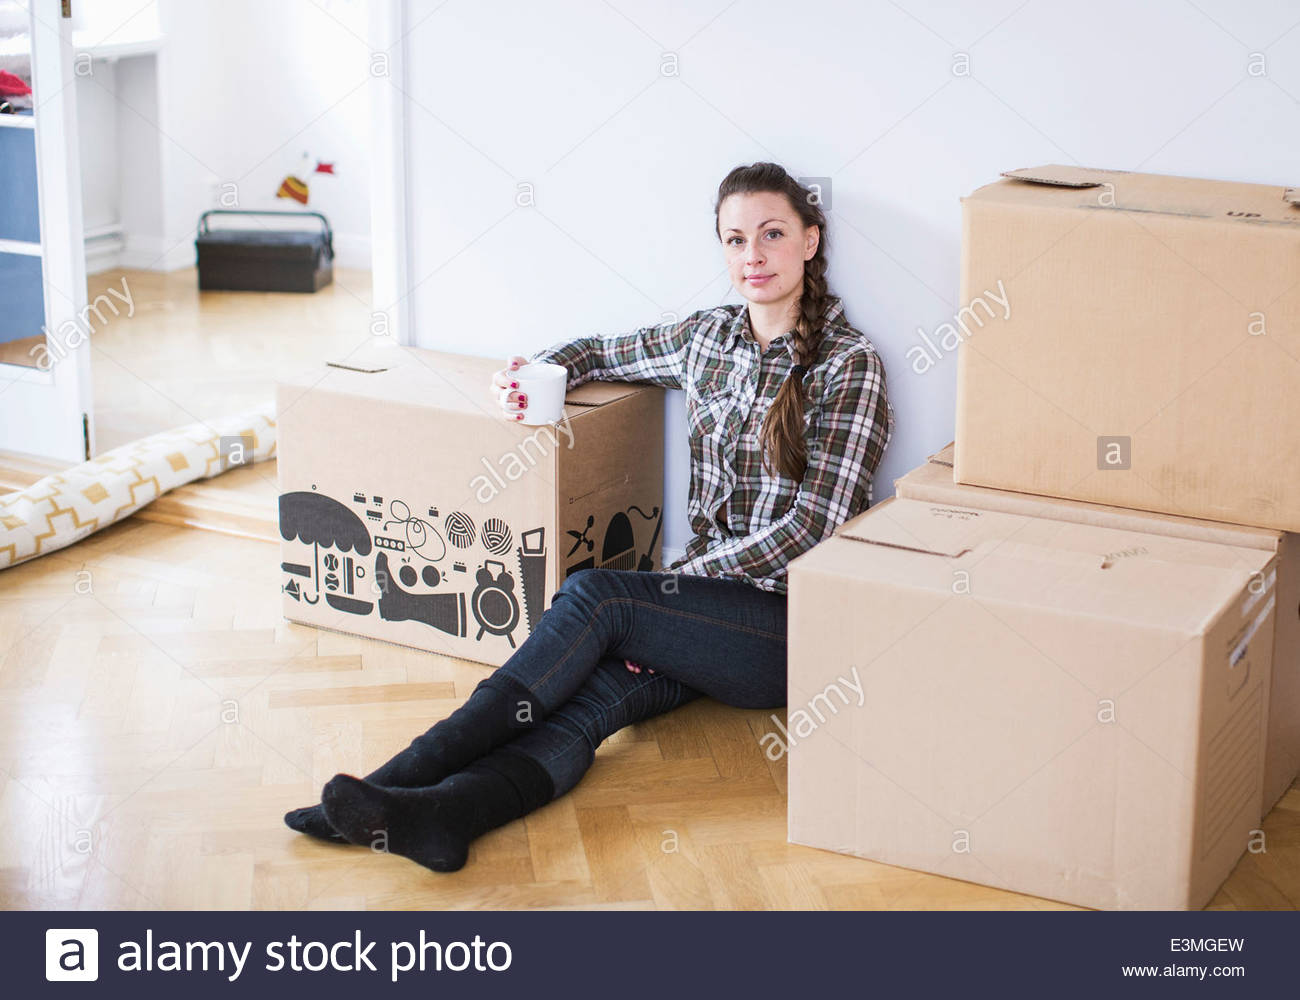 Full Length portrait of young woman having coffee in new home Photo Stock